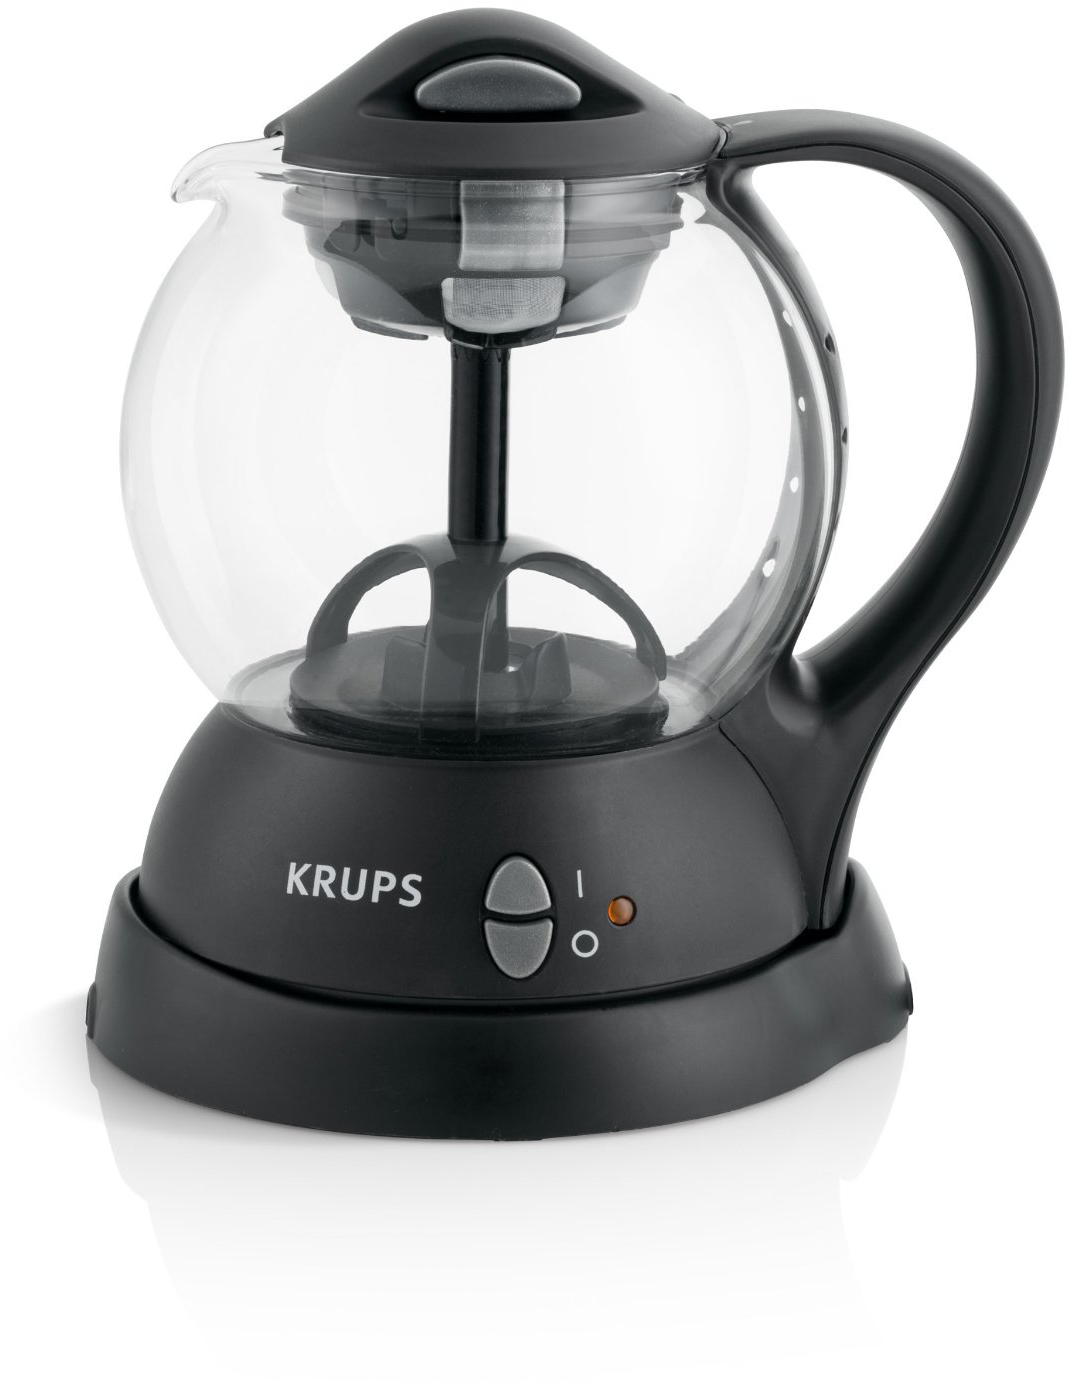 Krups Electric Tea Kettle with Integrated Infusion Basket, 1 Liter